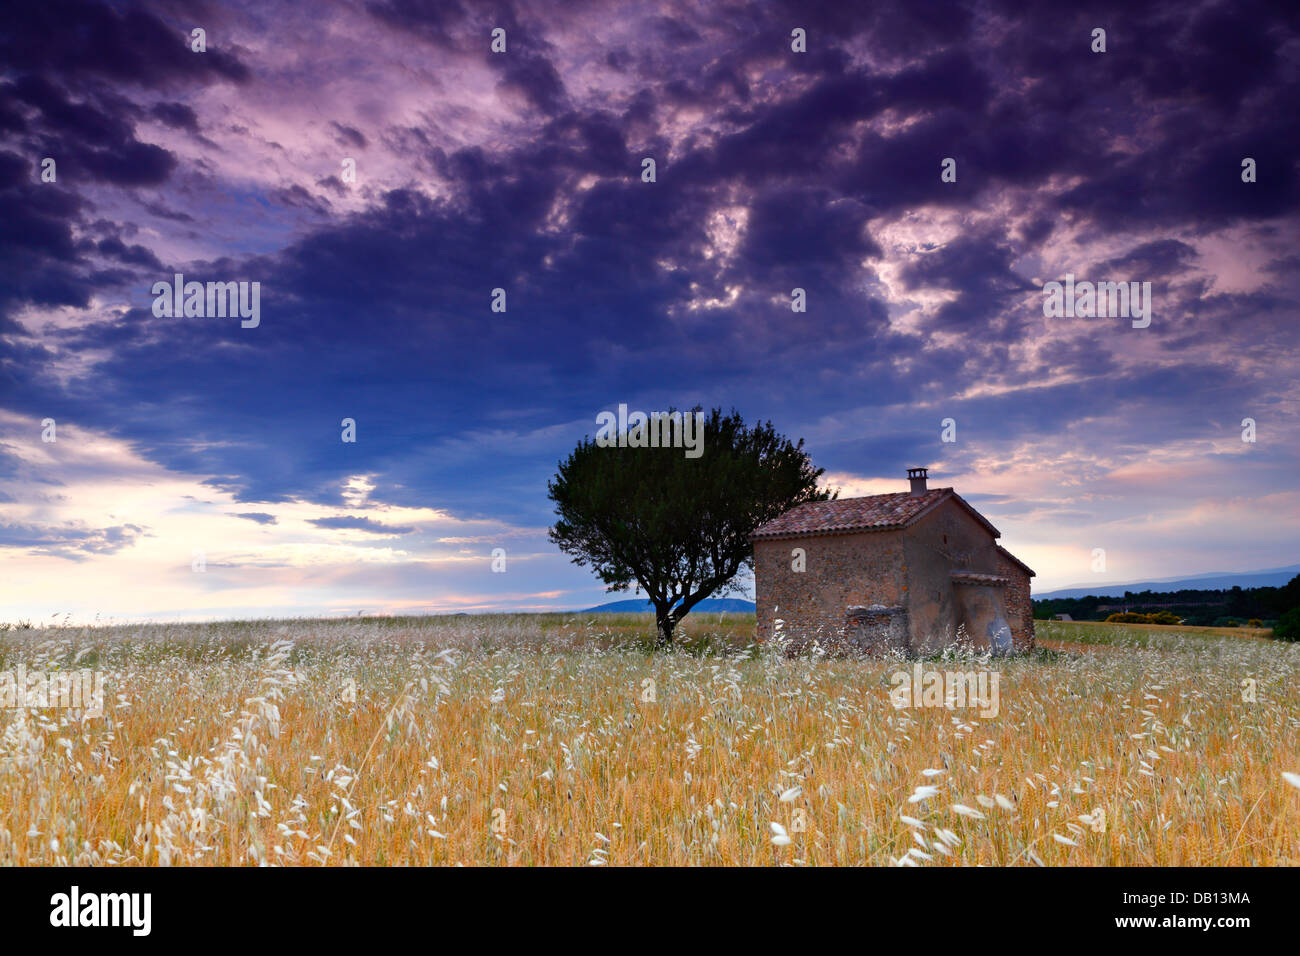 A house in a wheat field, France - Stock Image